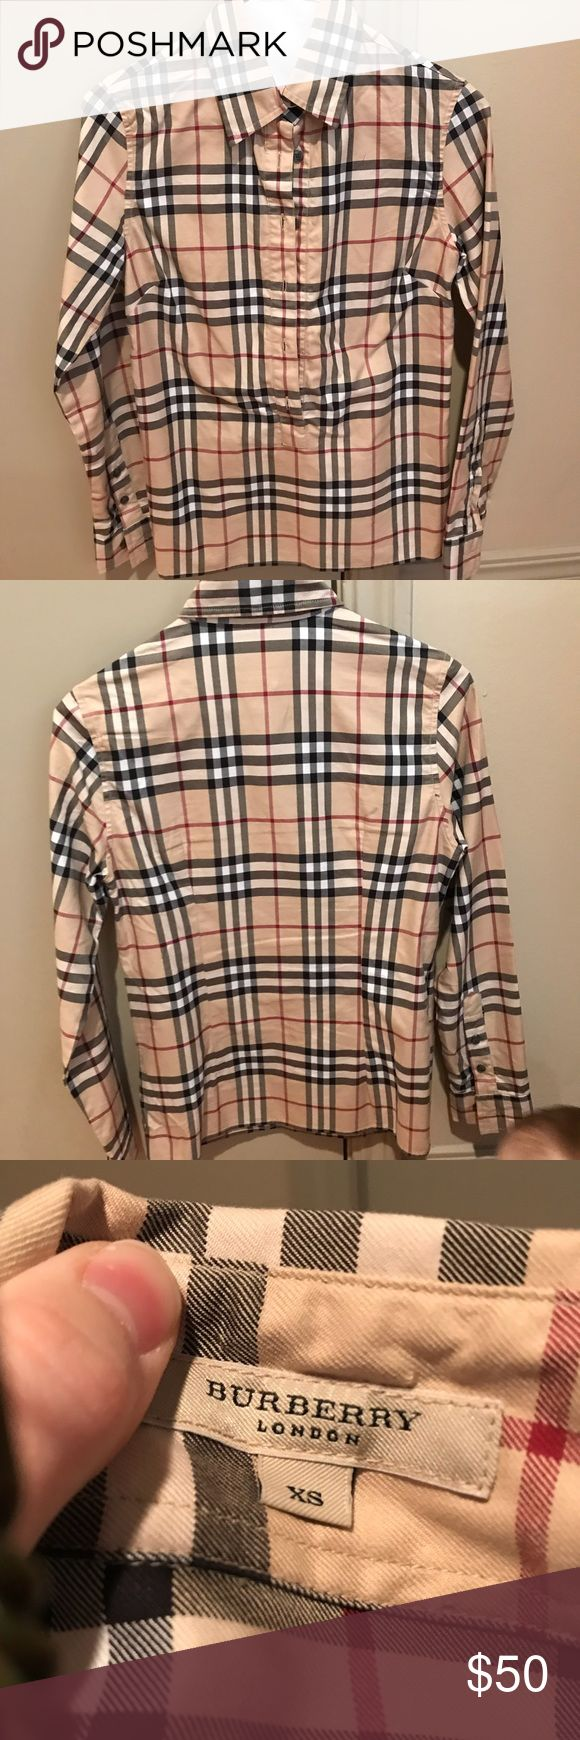 Burberry London Signature Plaid Button Down Burberry London Signature Plaid Button Down. In wonderful condition. Burberry Tops Button Down Shirts